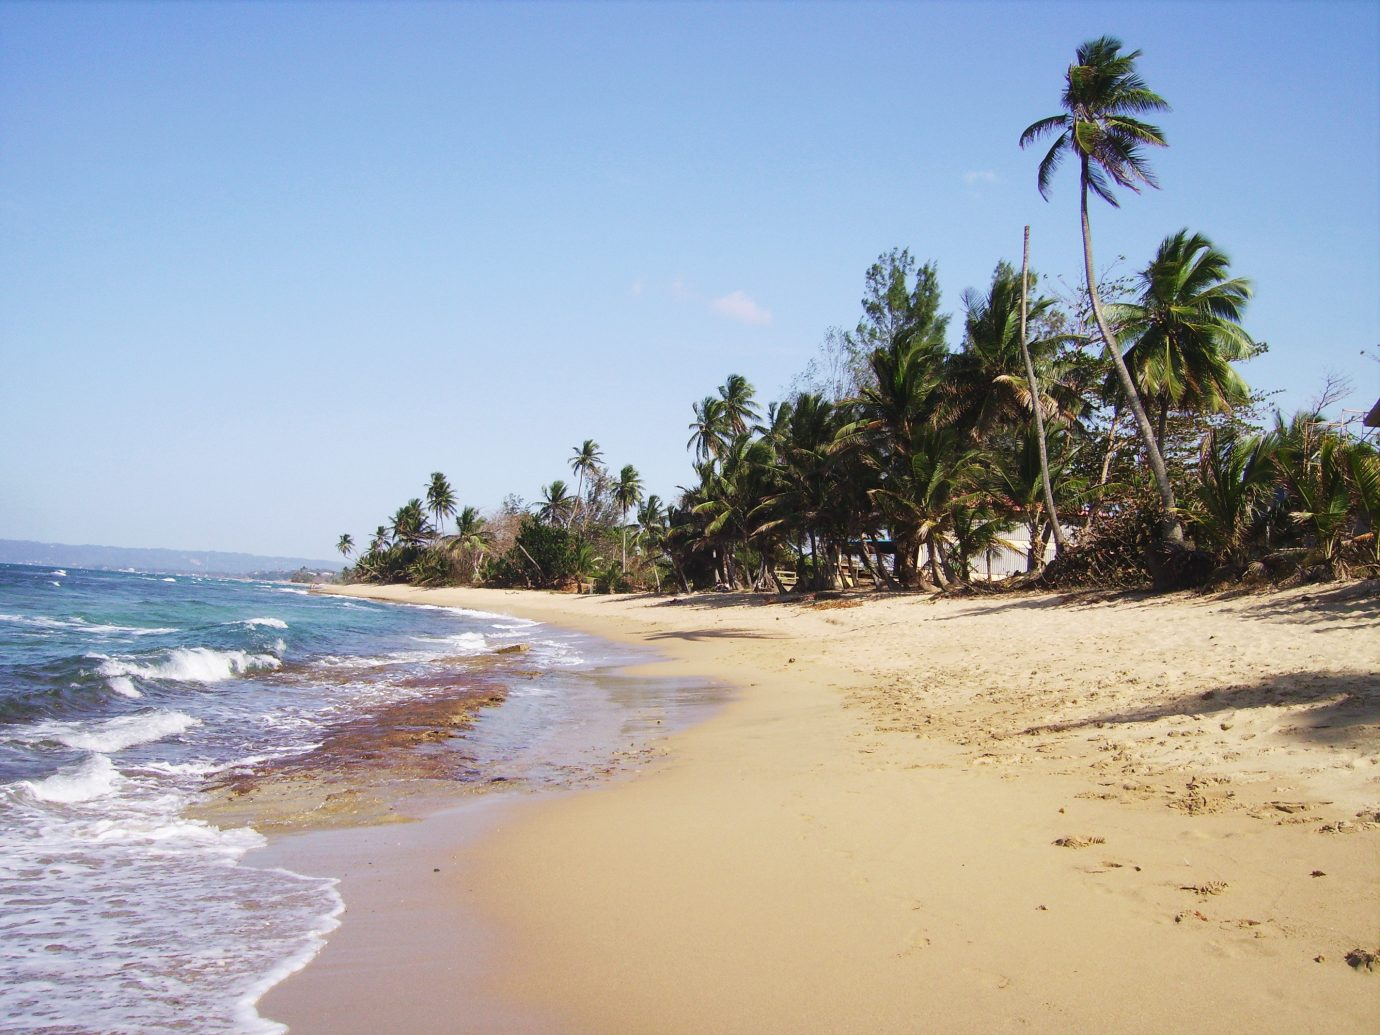 Spanish Wall Beach in Rincon, Puerto Rico